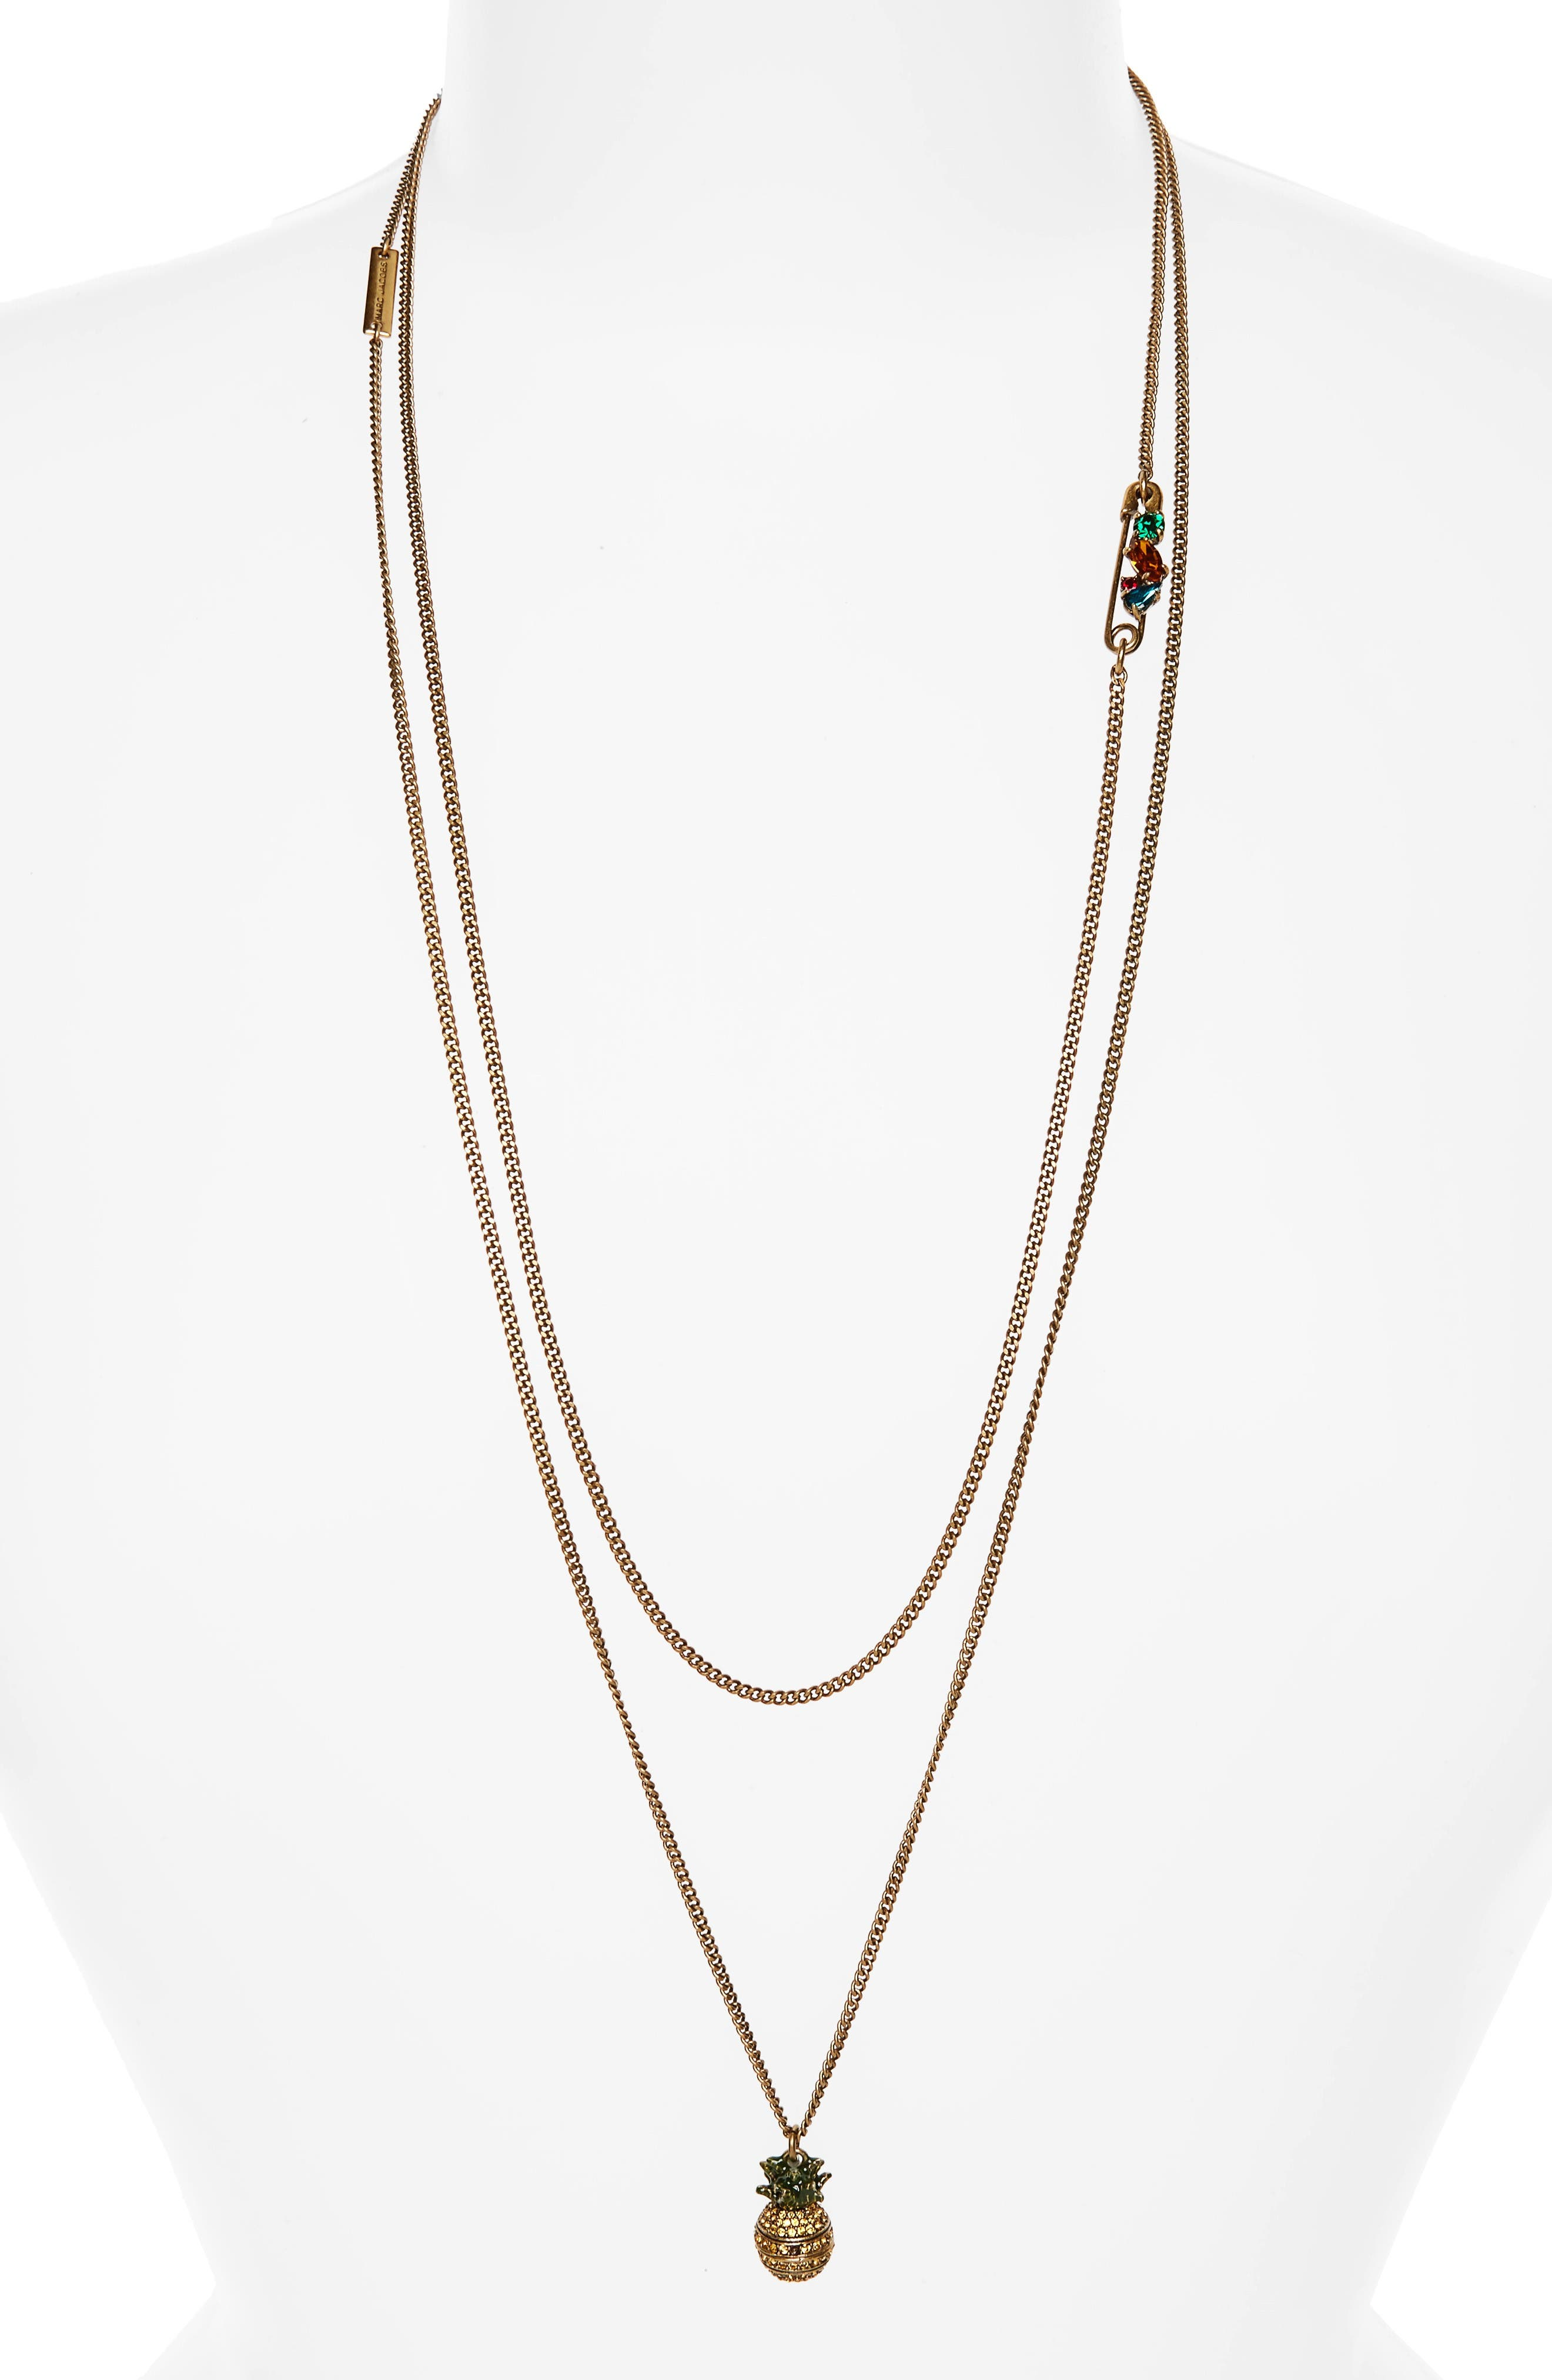 Main Image - MARC JACOBS Pineapple Layer Necklace